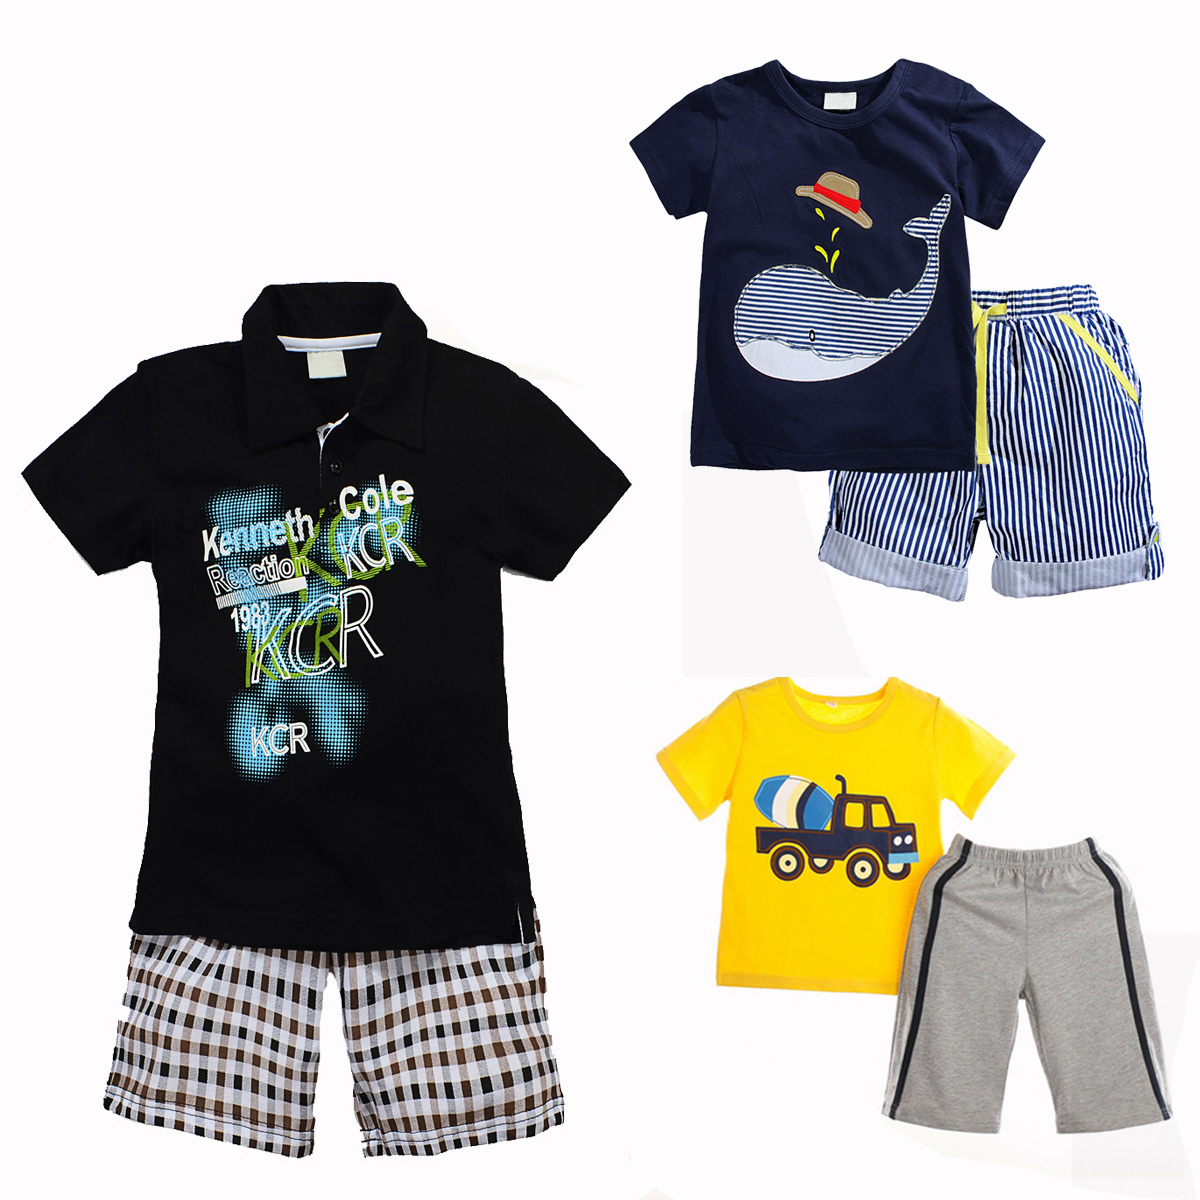 New 2017 Kids Boy Summer Set Cotton Shorts + T Shirt Children Boys Clothing Baby Boy T Shirt Set Sports Suit Child Kids Clothes new 2017 summer children boys sets cotton casual striped sports clothing 2 pieces boy o neck pullover shorts set kid clothes hot